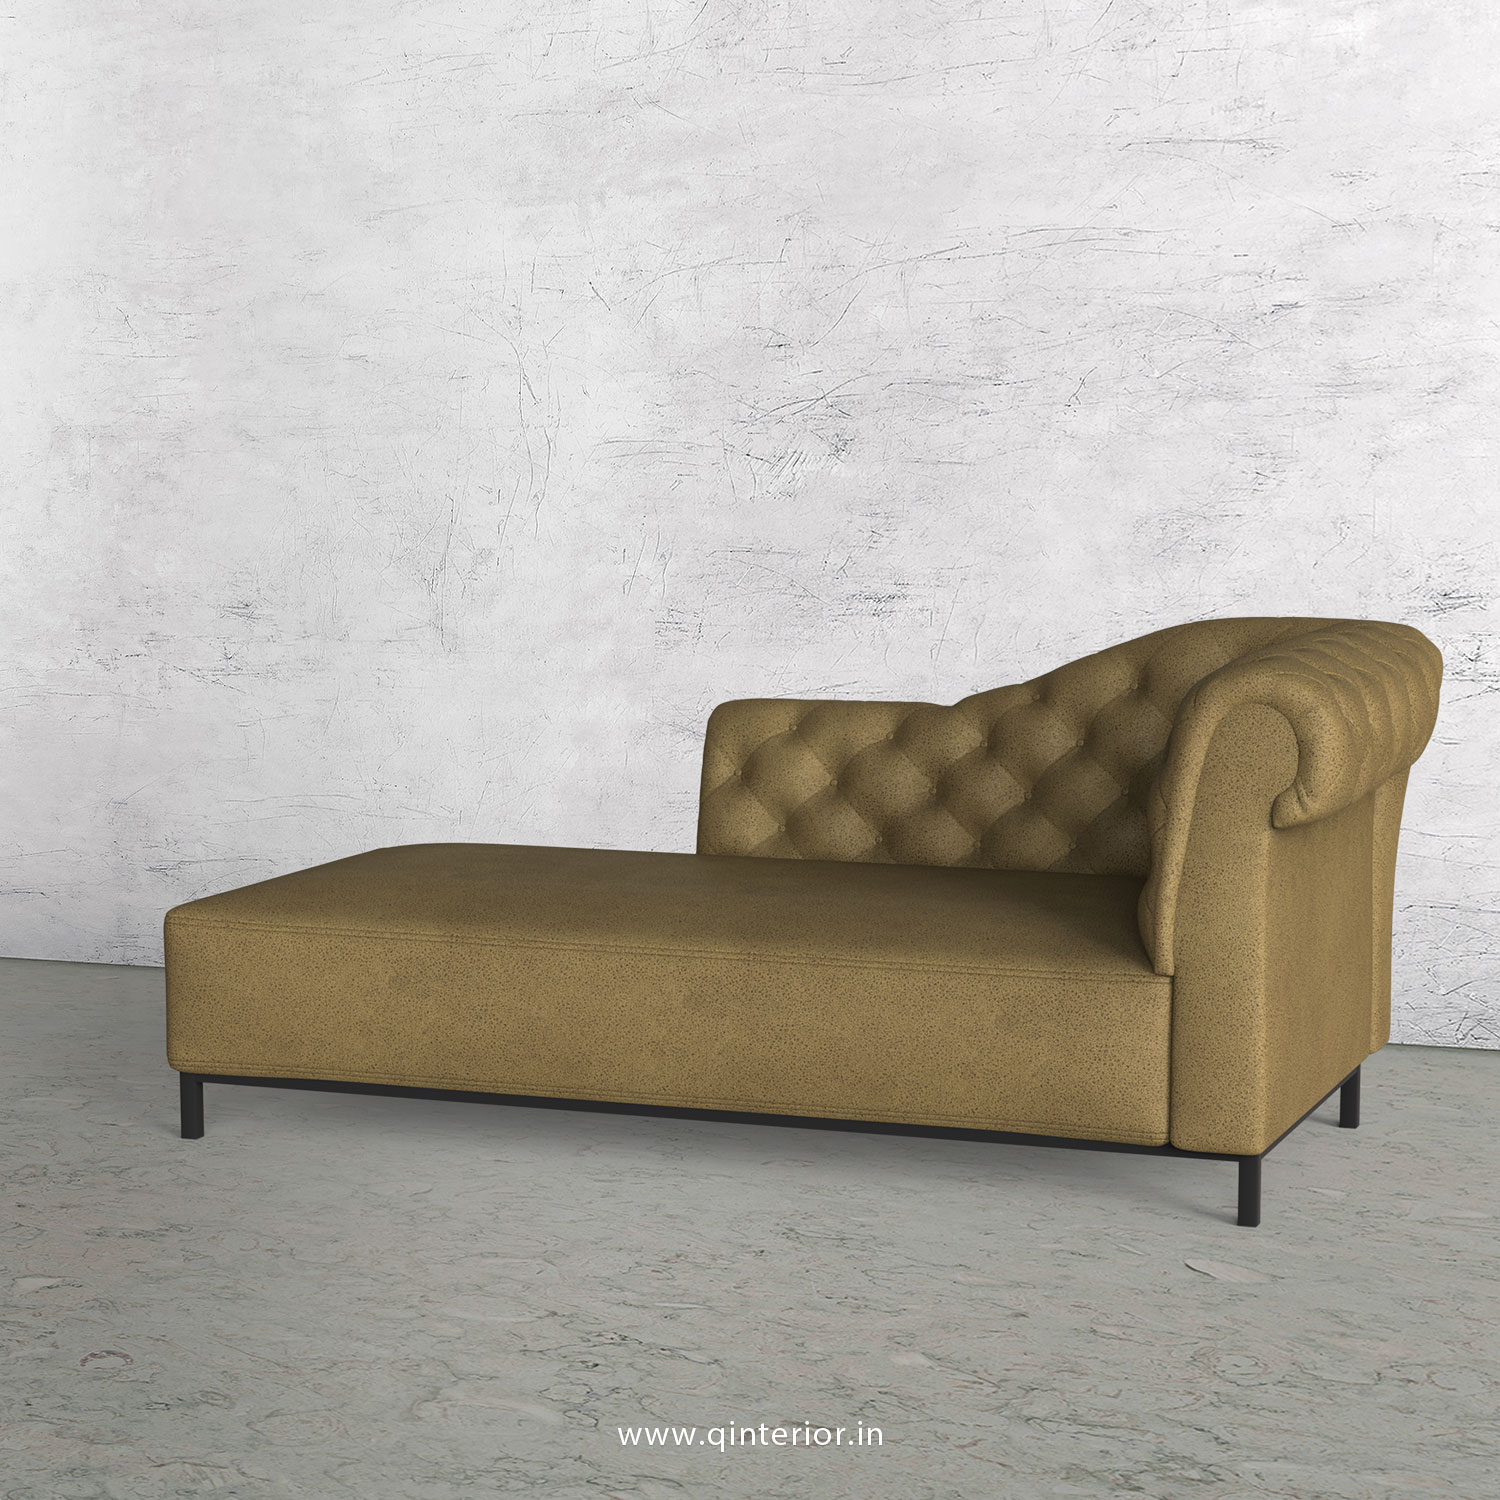 Amour Lounger Chaise in Fab Leather - LCH001 FL01